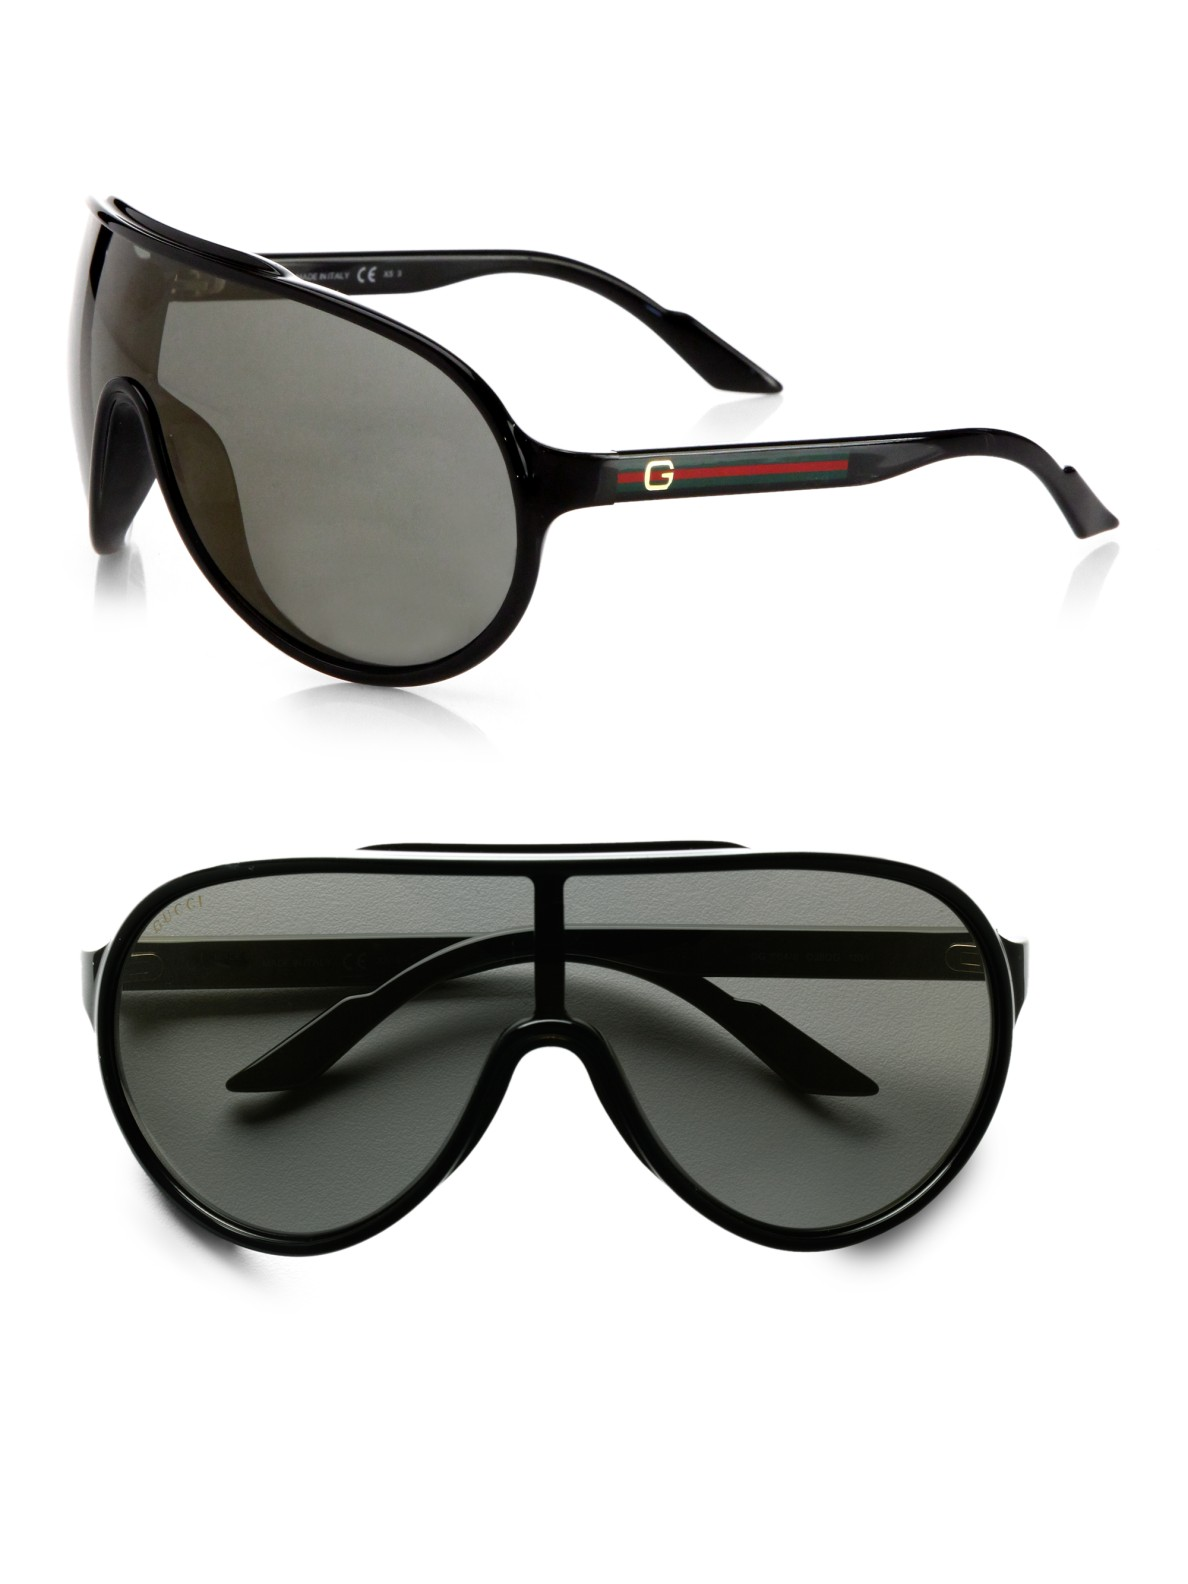 Gucci Shield Sunglasses  gucci plastic shield sunglasses in black for men lyst